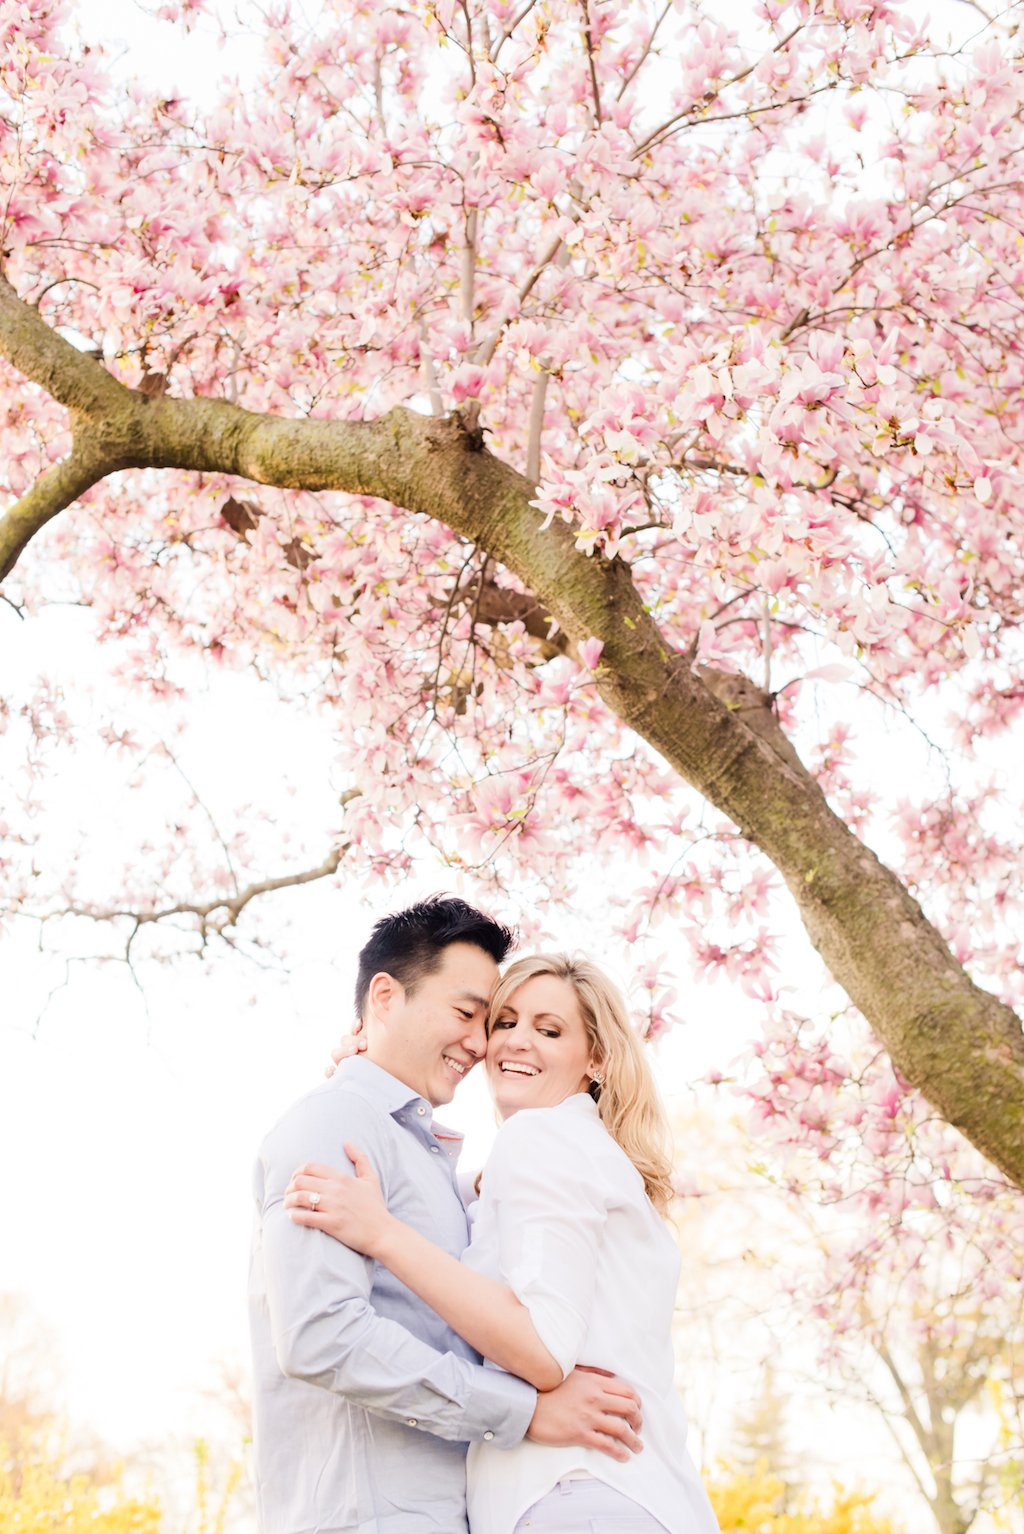 566873eccdf4 18 Ideas to Steal for Your Cherry Blossom-Themed Wedding ...